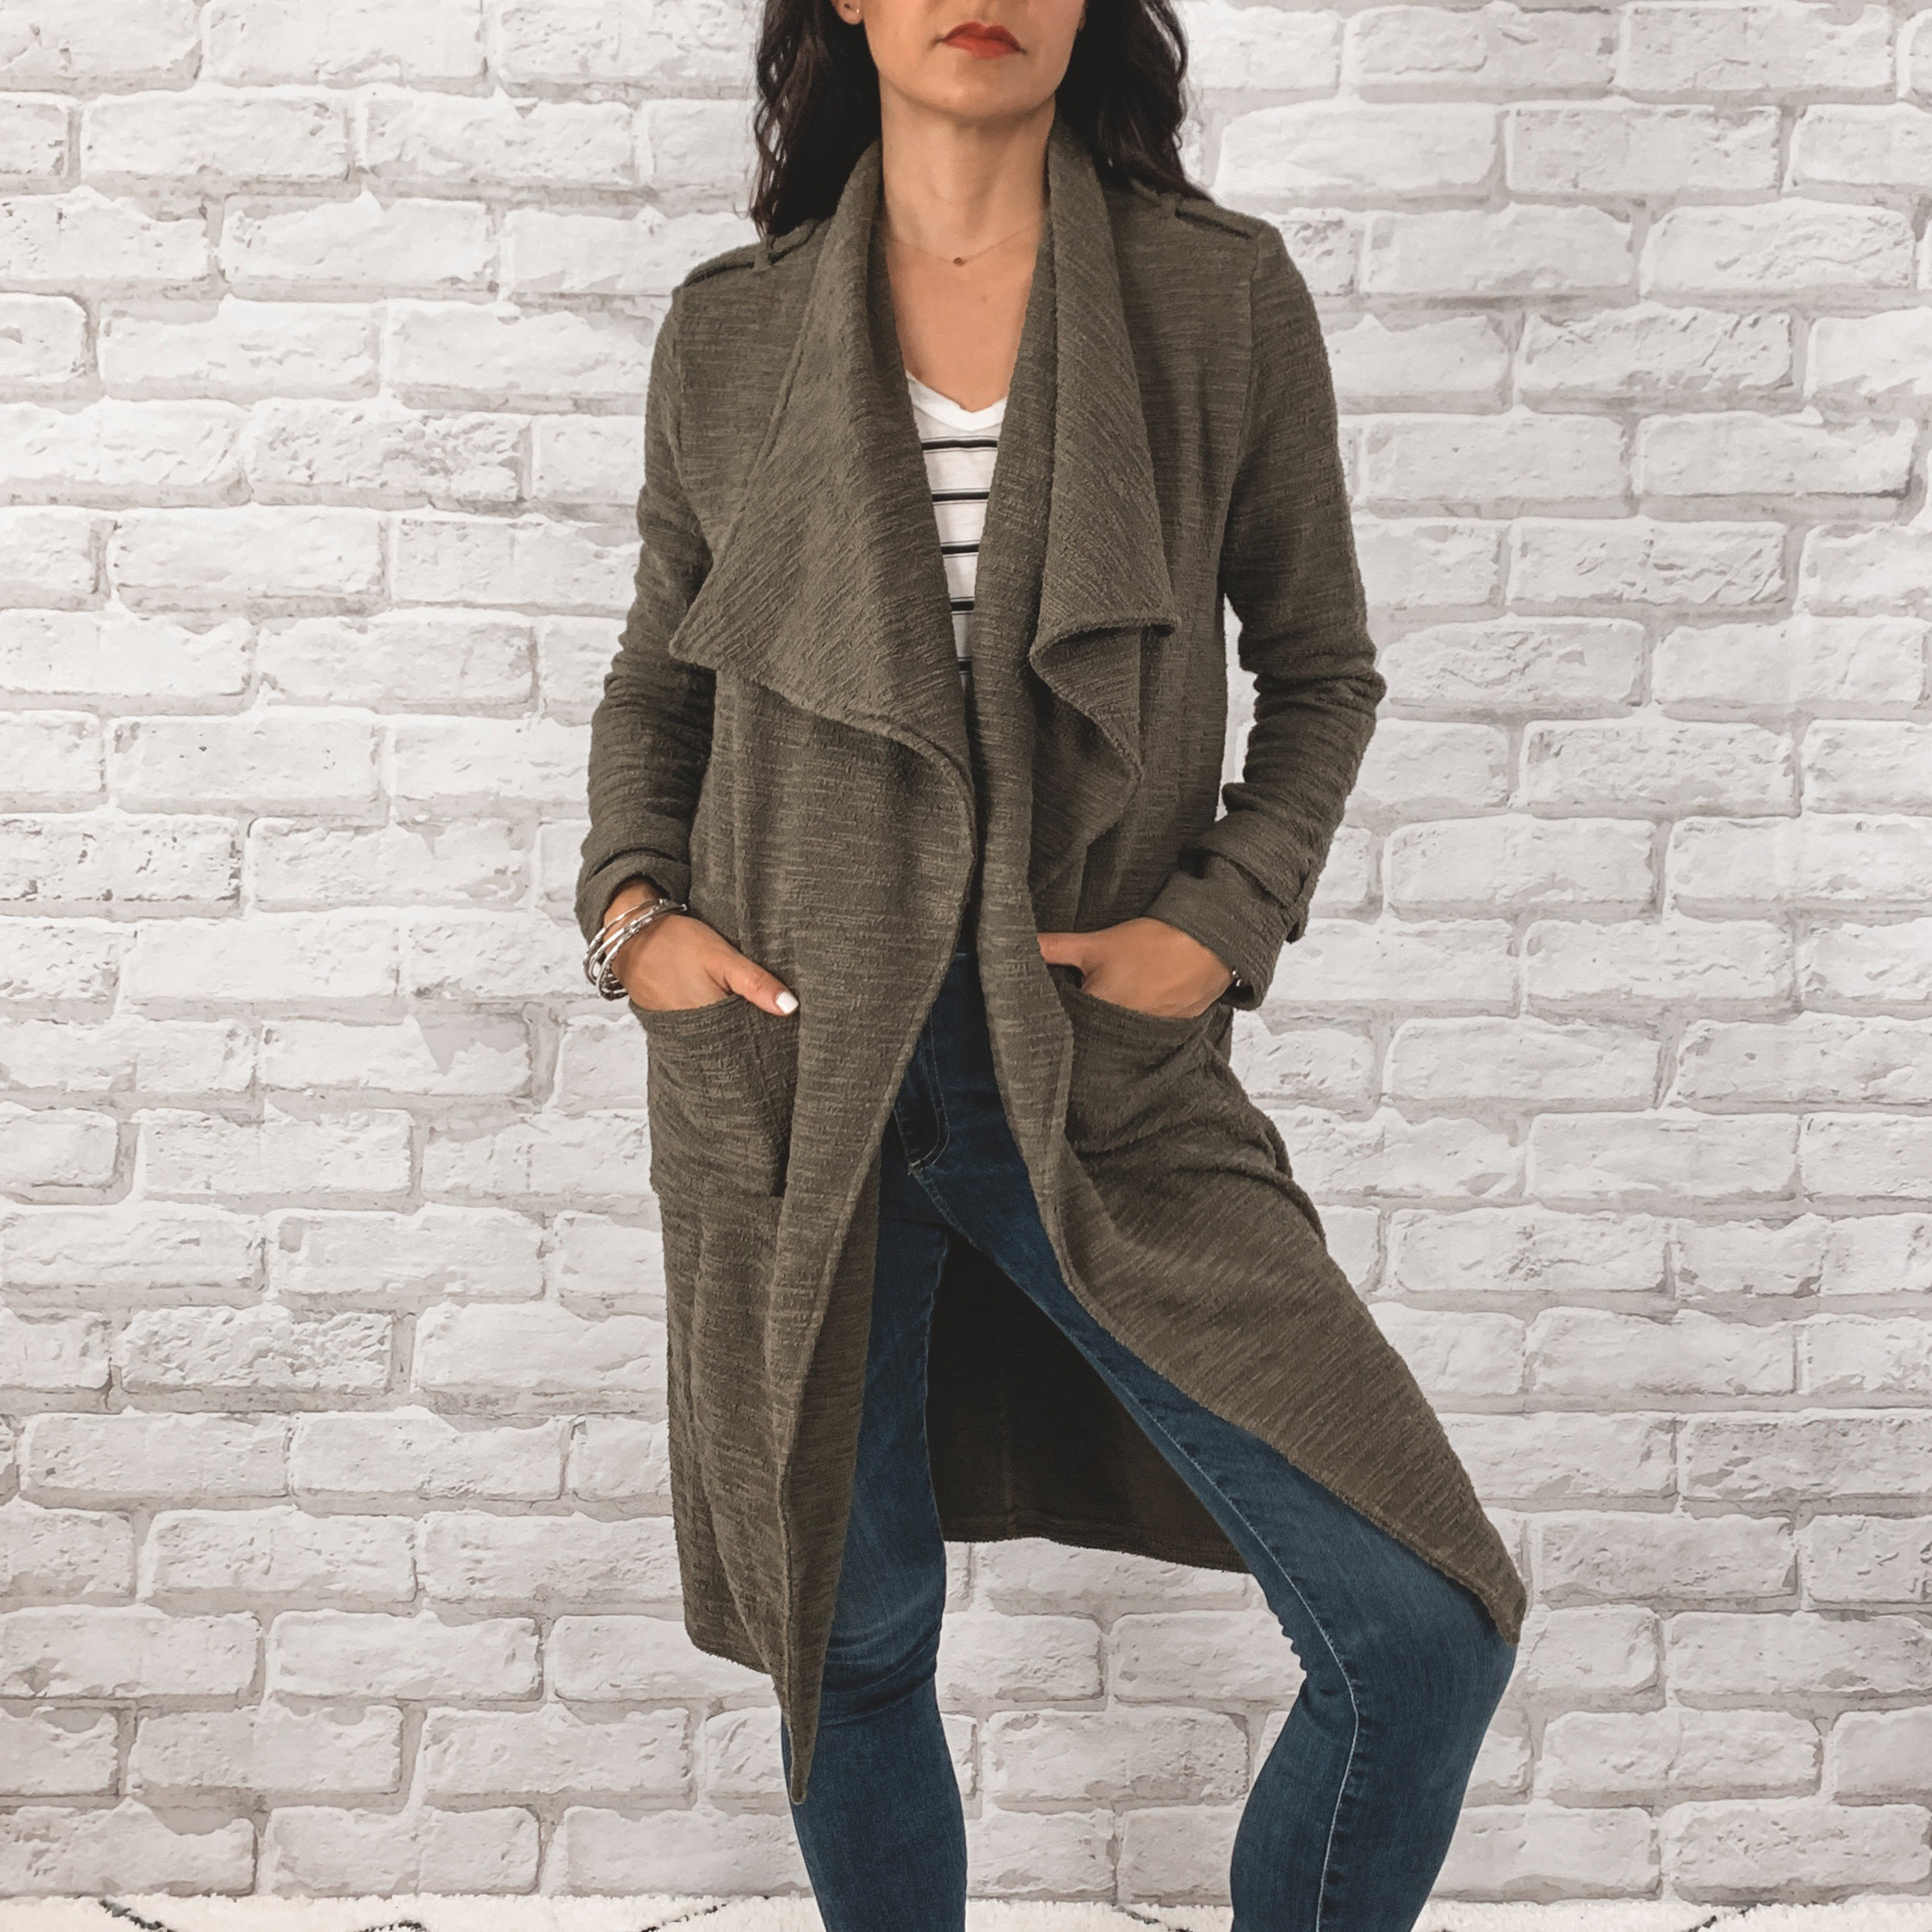 — OUTFIT DETAILS —    BB Dakota Drape Front Coat    {Anniversary Price: $86.80 | After Sale: $130 | Wearing: Extra Small|}  |   BP. Raw Edge Tee    {Anniversary Price: $15.90 | After Sale: $25.00 |Wearing: Small}  |   AG Farrah High Waisted Skinny Jeans      {Anniversary Price: $149.90 | After Sale: $225.00 |Wearing: 26}    — CCW DETAILS —    Blacksmith Tactical Holster with UltiClip     | Glock 43